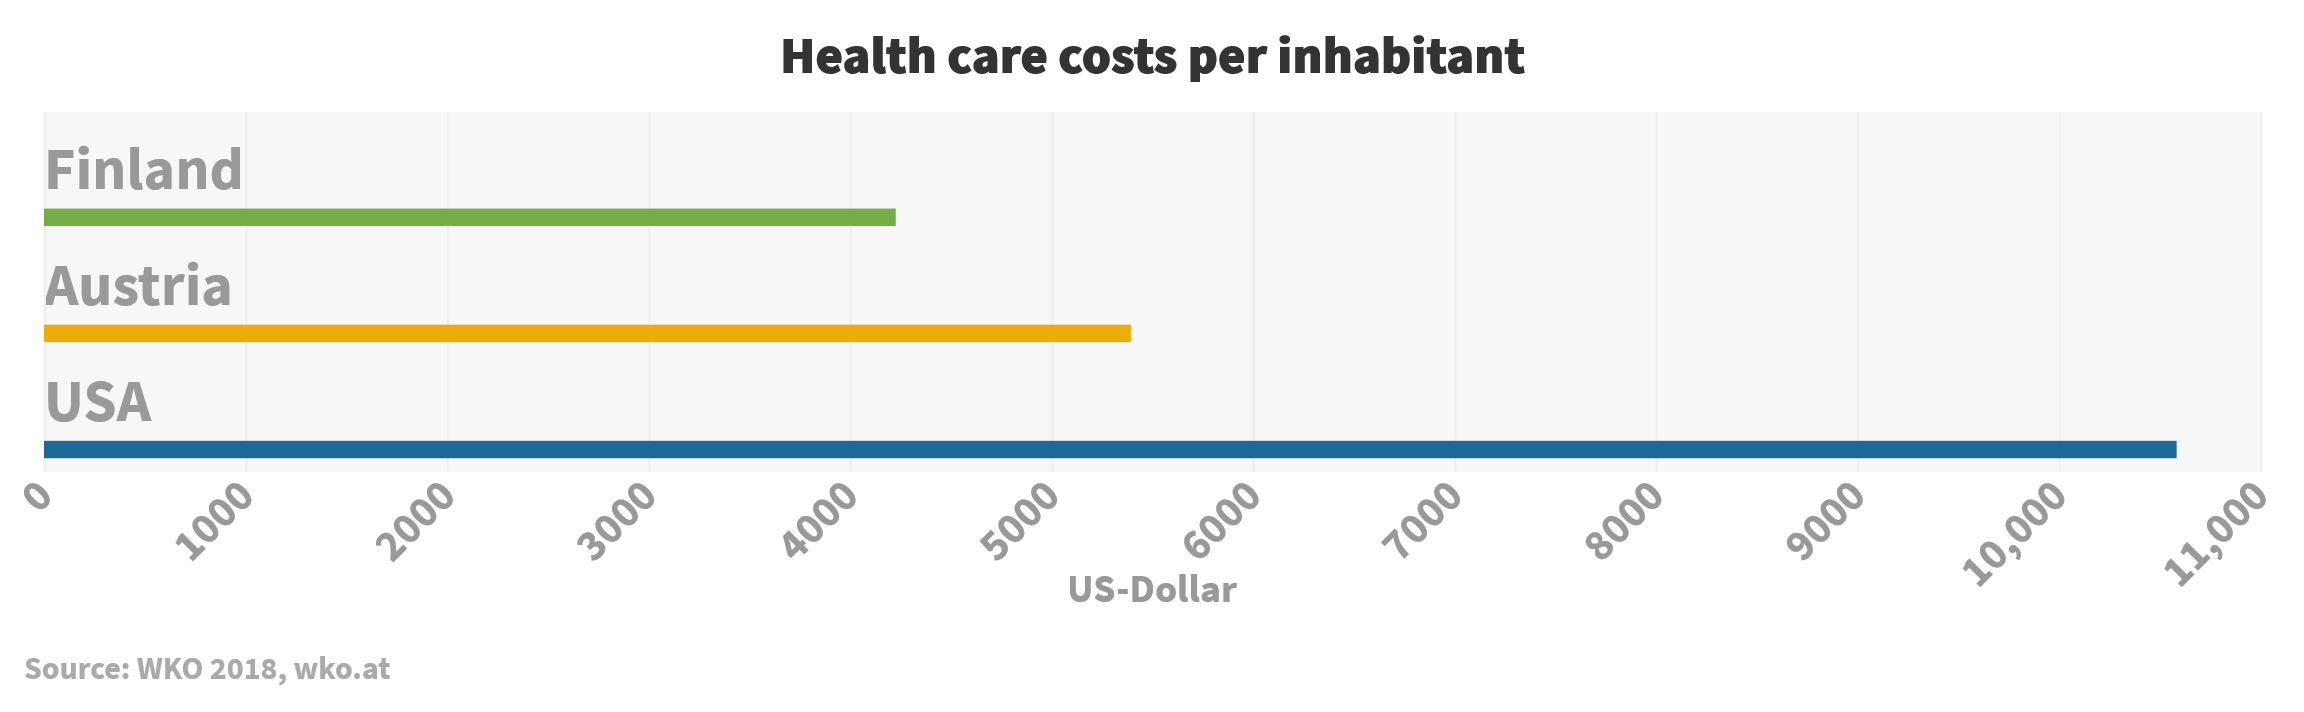 Health care costs per inhabitant